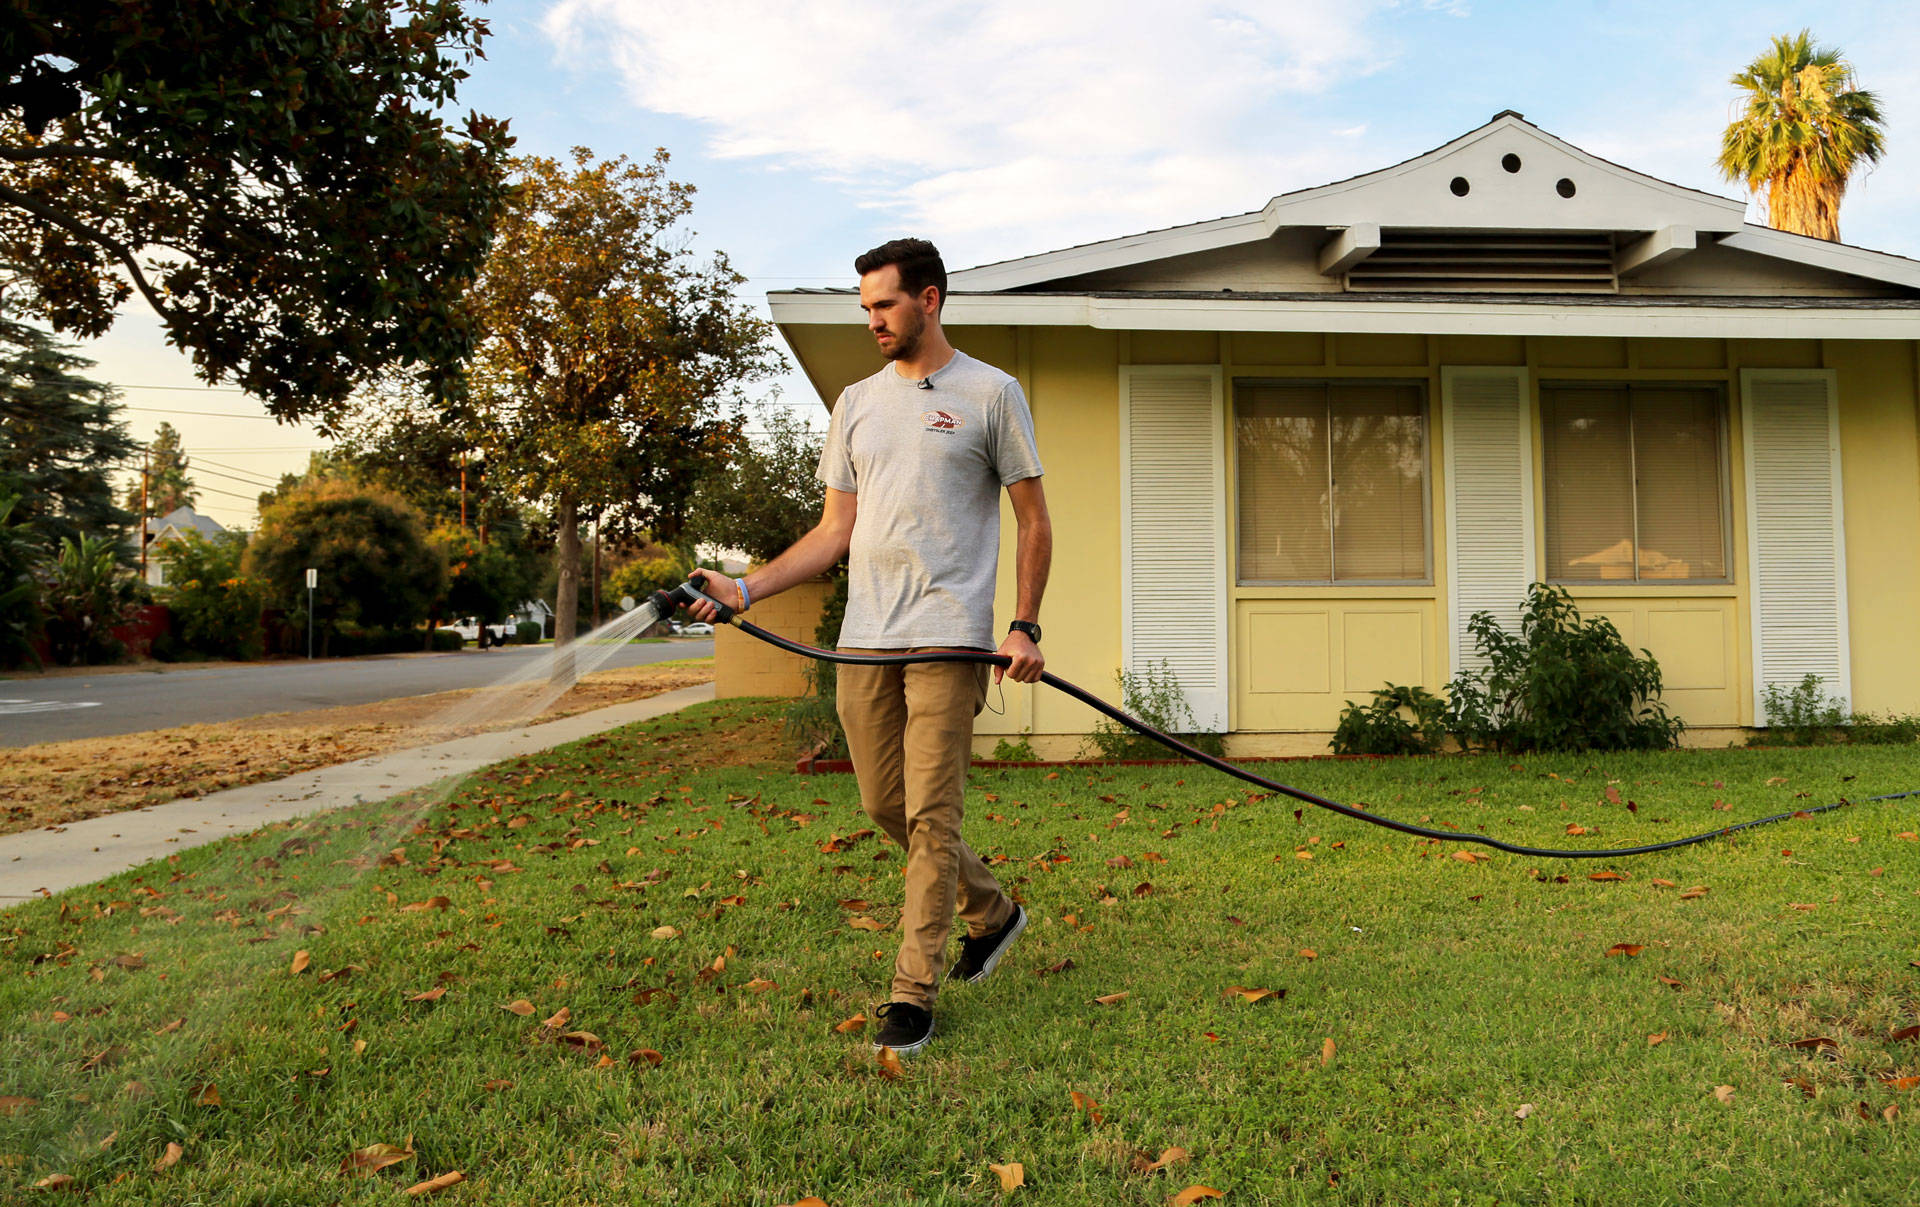 Brandon Miller waters the lawn in front of his Riverside home, July 17, 2018. Signe Larsen/KPCC